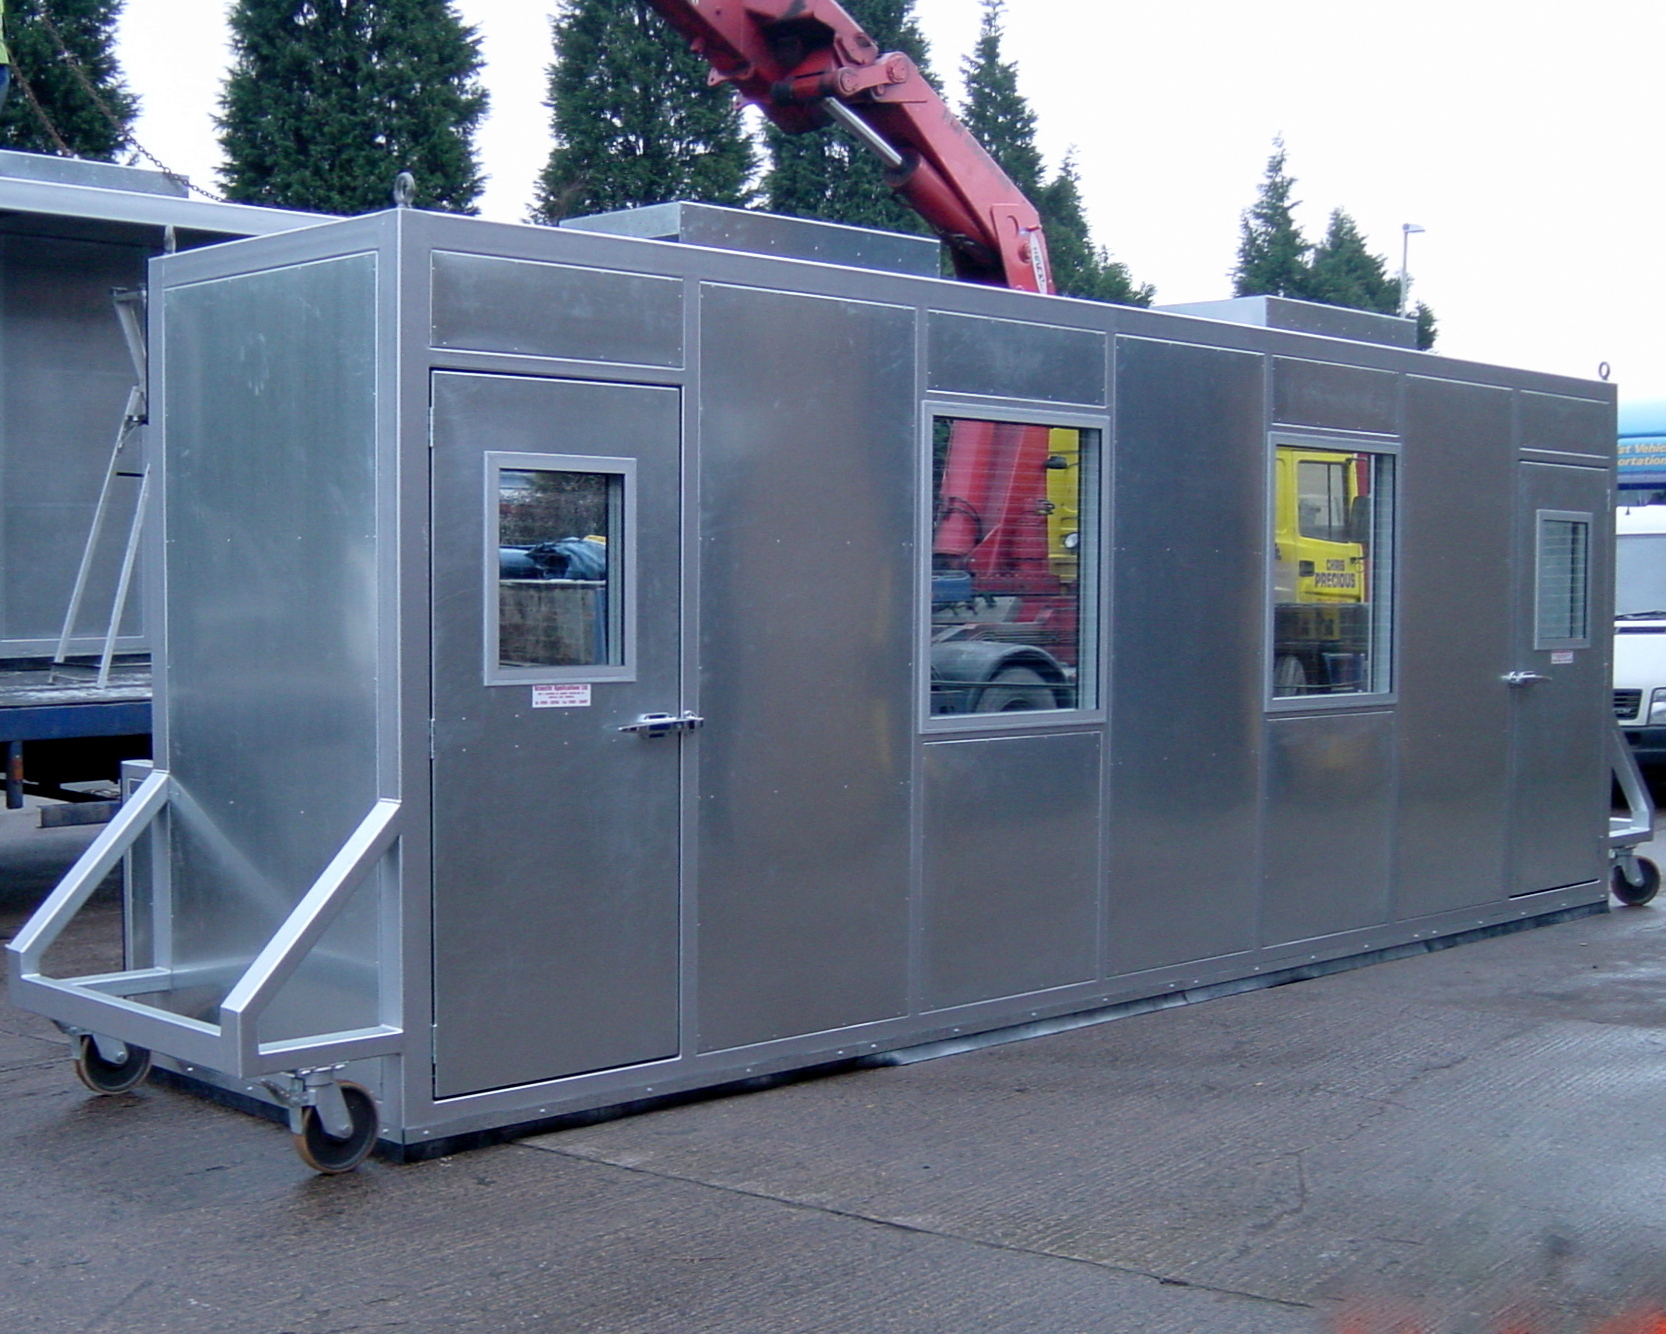 enclosure for test rig on wheels